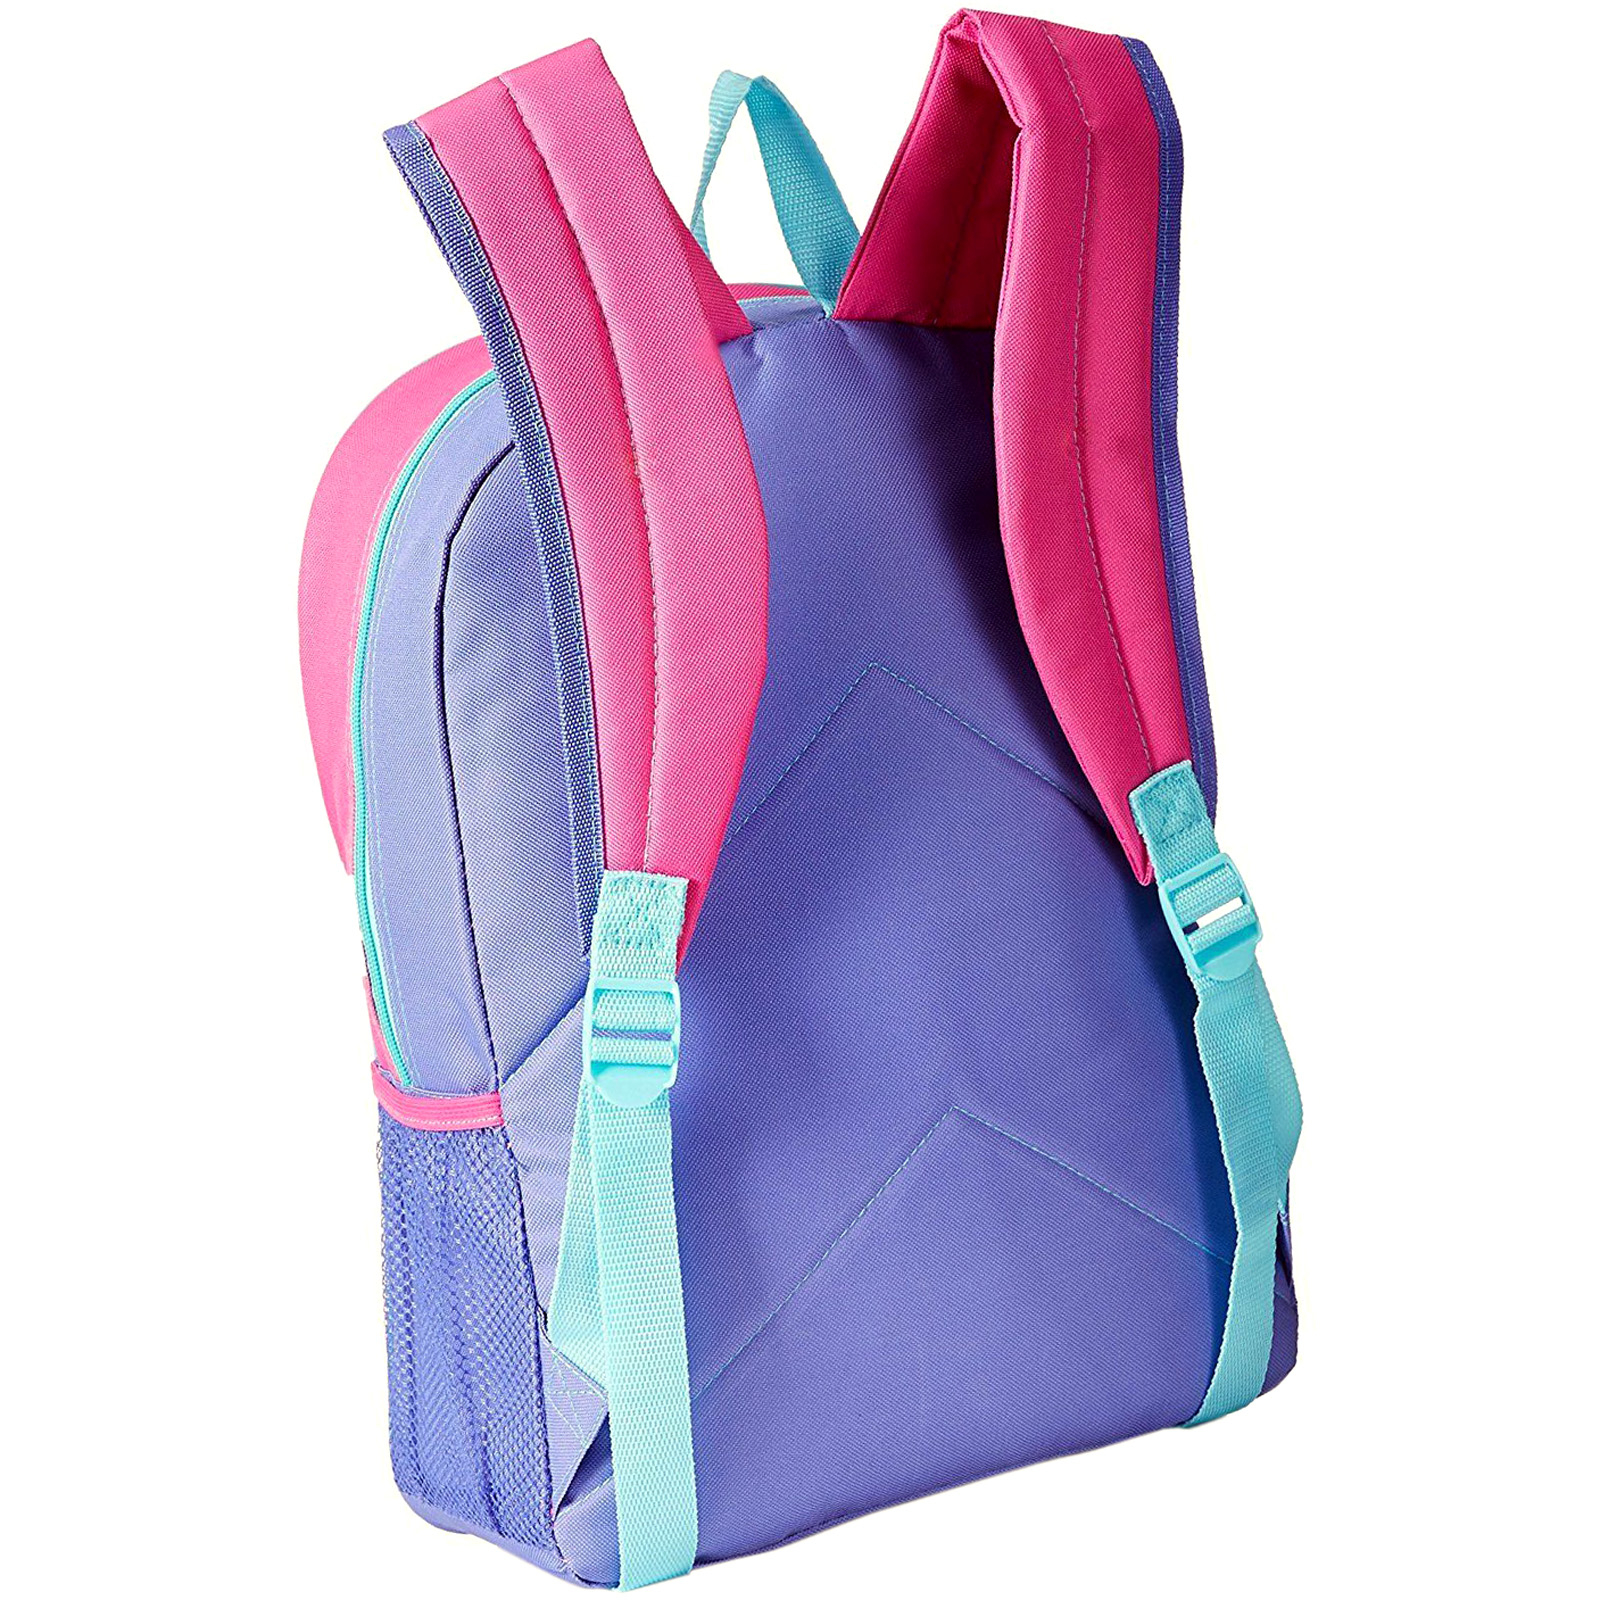 Paw Patrol Girls Backpack Back View